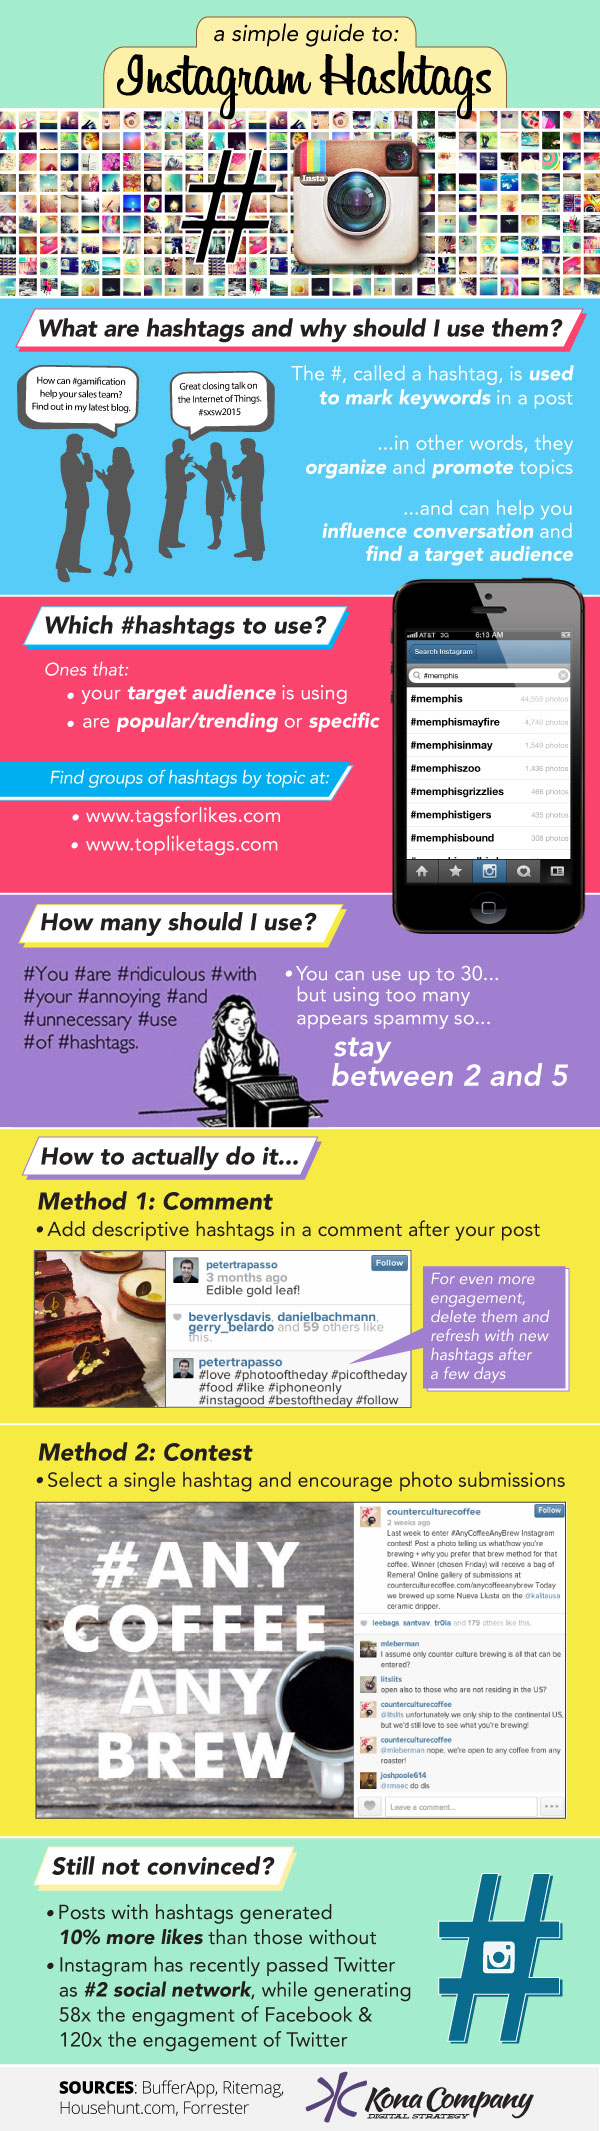 Cool-Hashtag-Marketing-Tips-For-Instagram